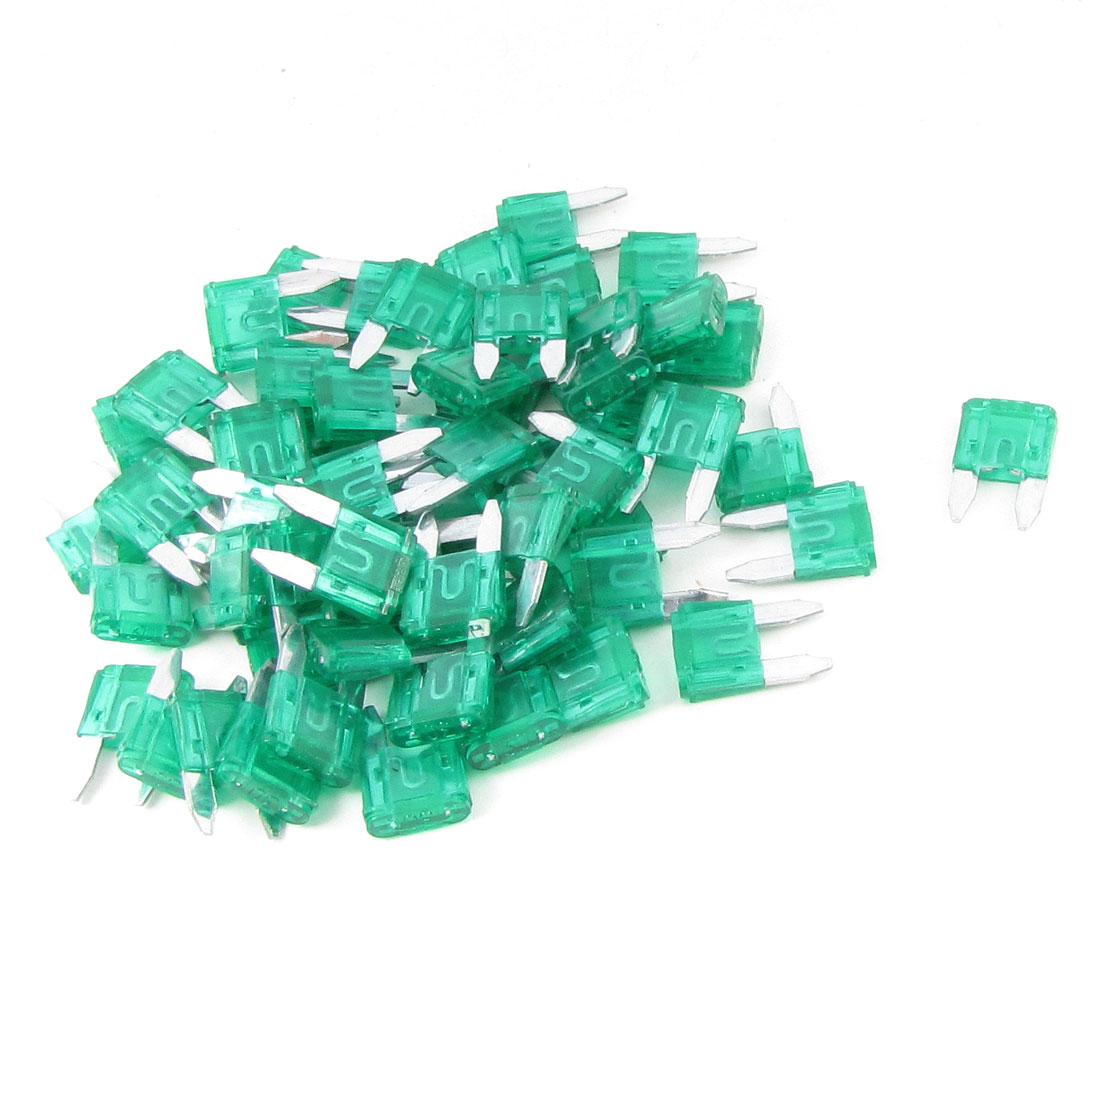 60PCS Green 30A Fast Acting 17mm Long Car Blade Fuses Fuse